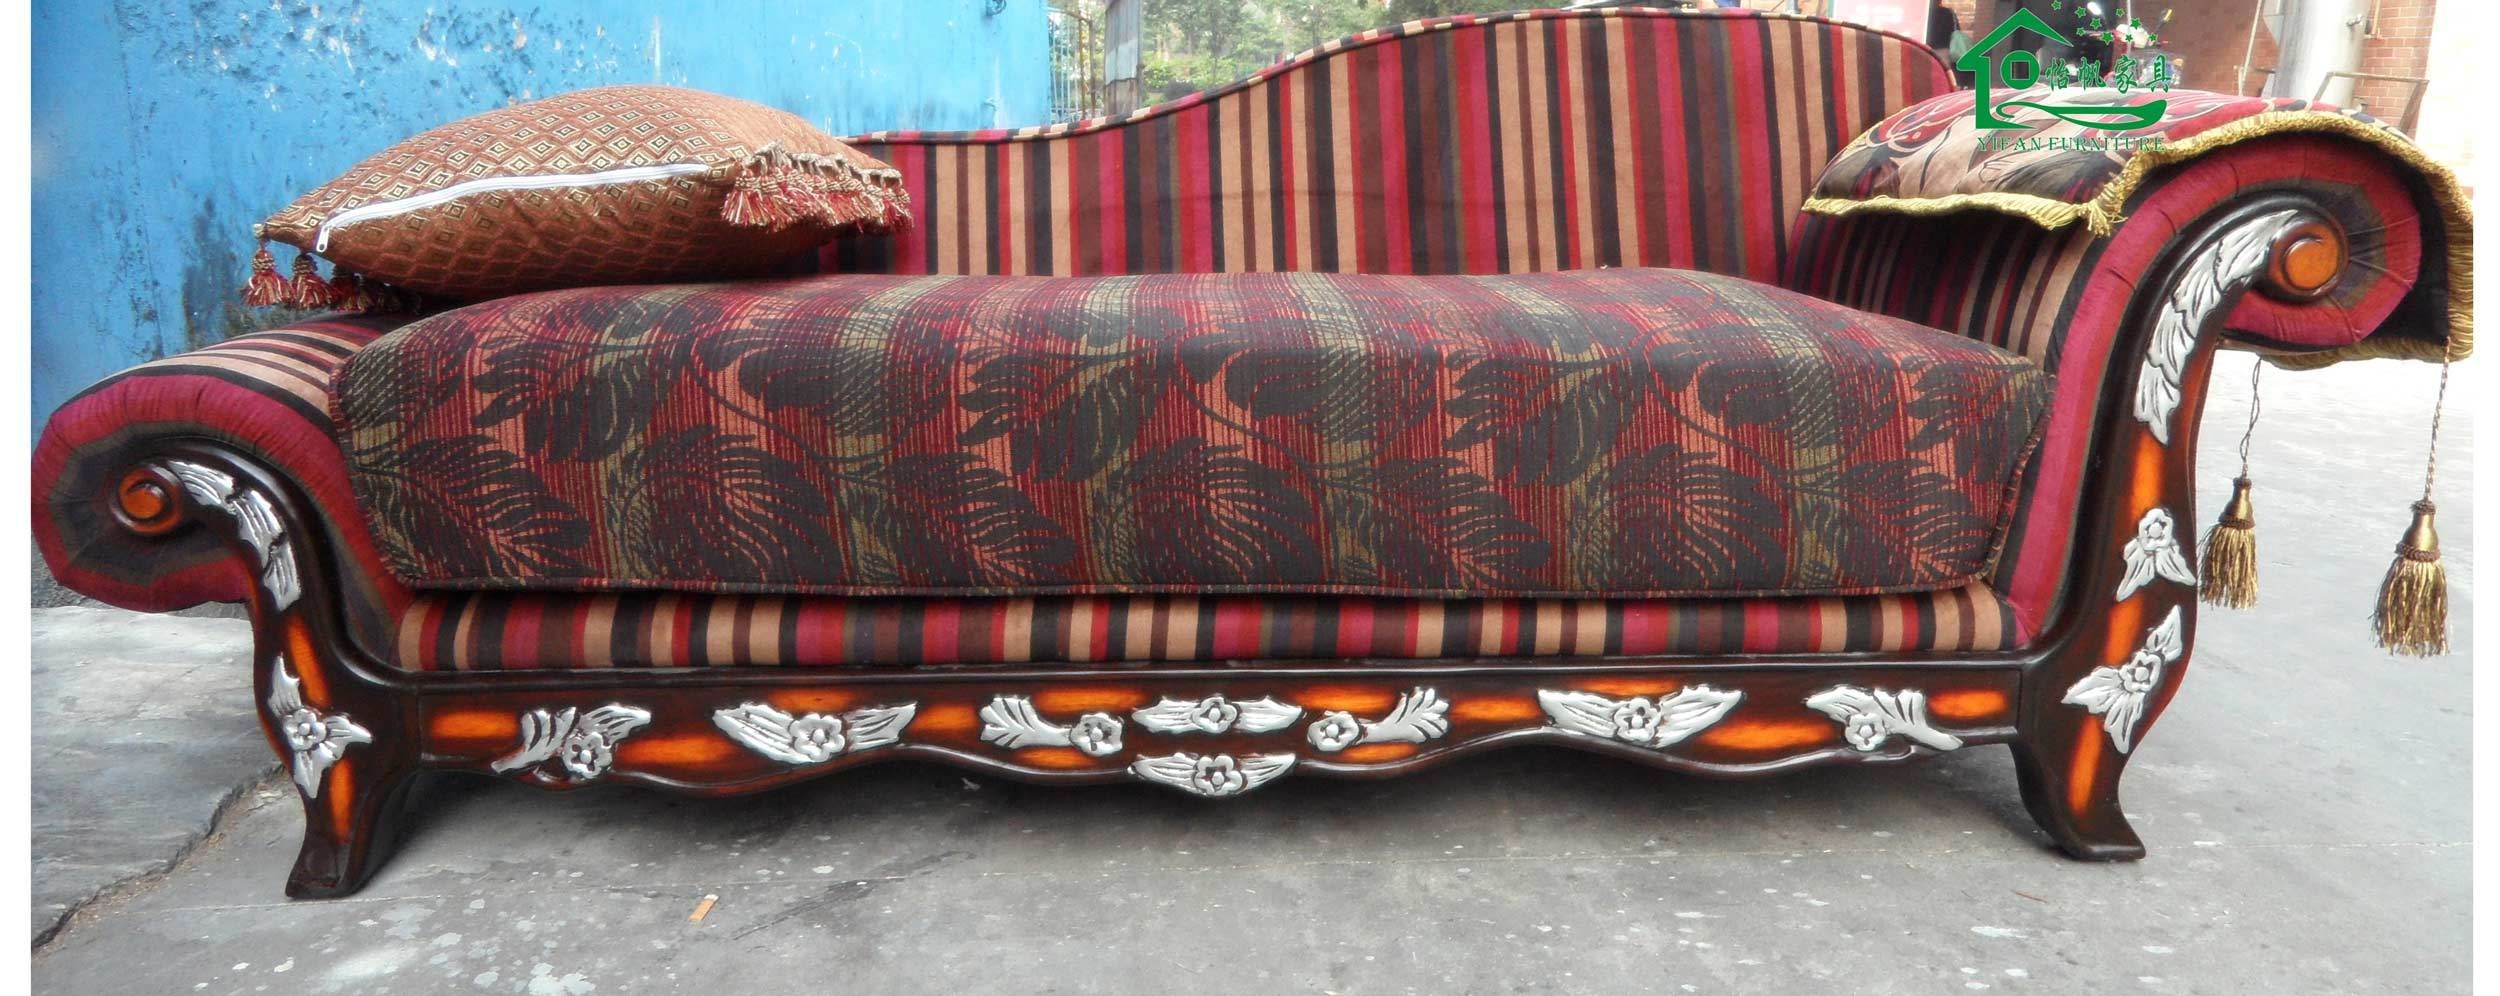 China wood chaise lounge sofa bed hotel sofa yf d29a for 2 chaise lounges sofa